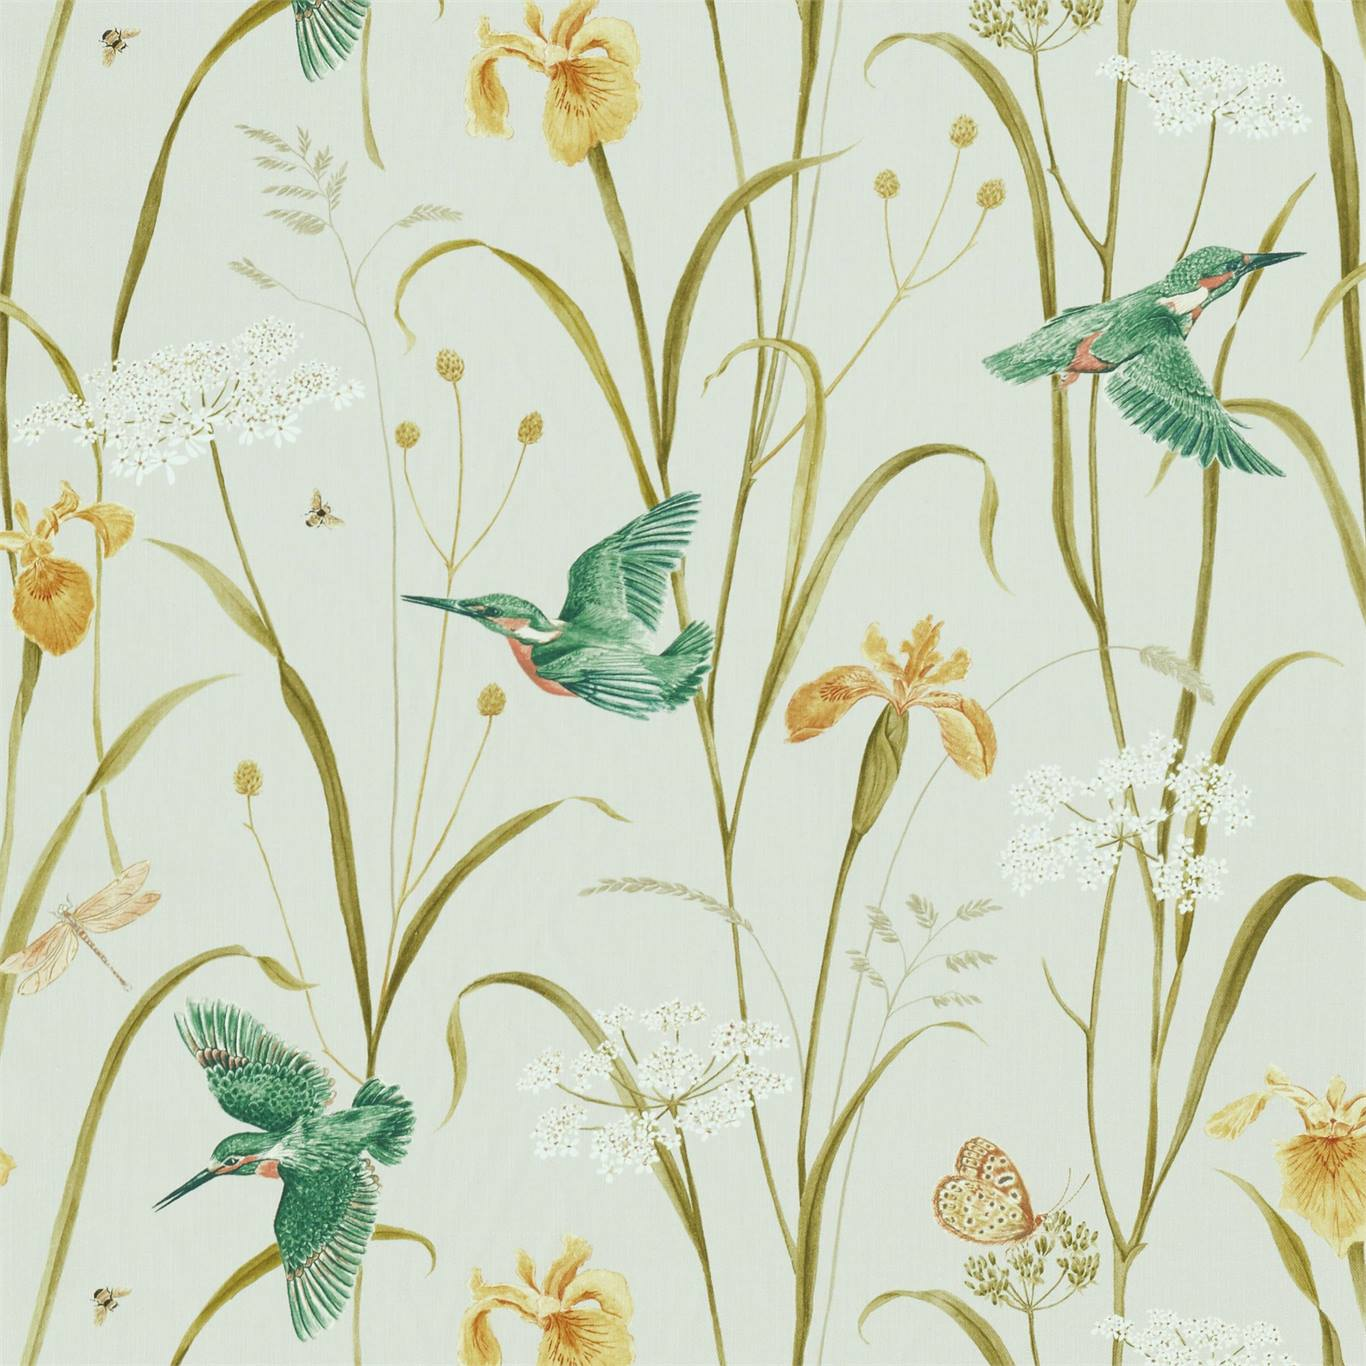 DNTF226731 Collection - National Trust Fabric